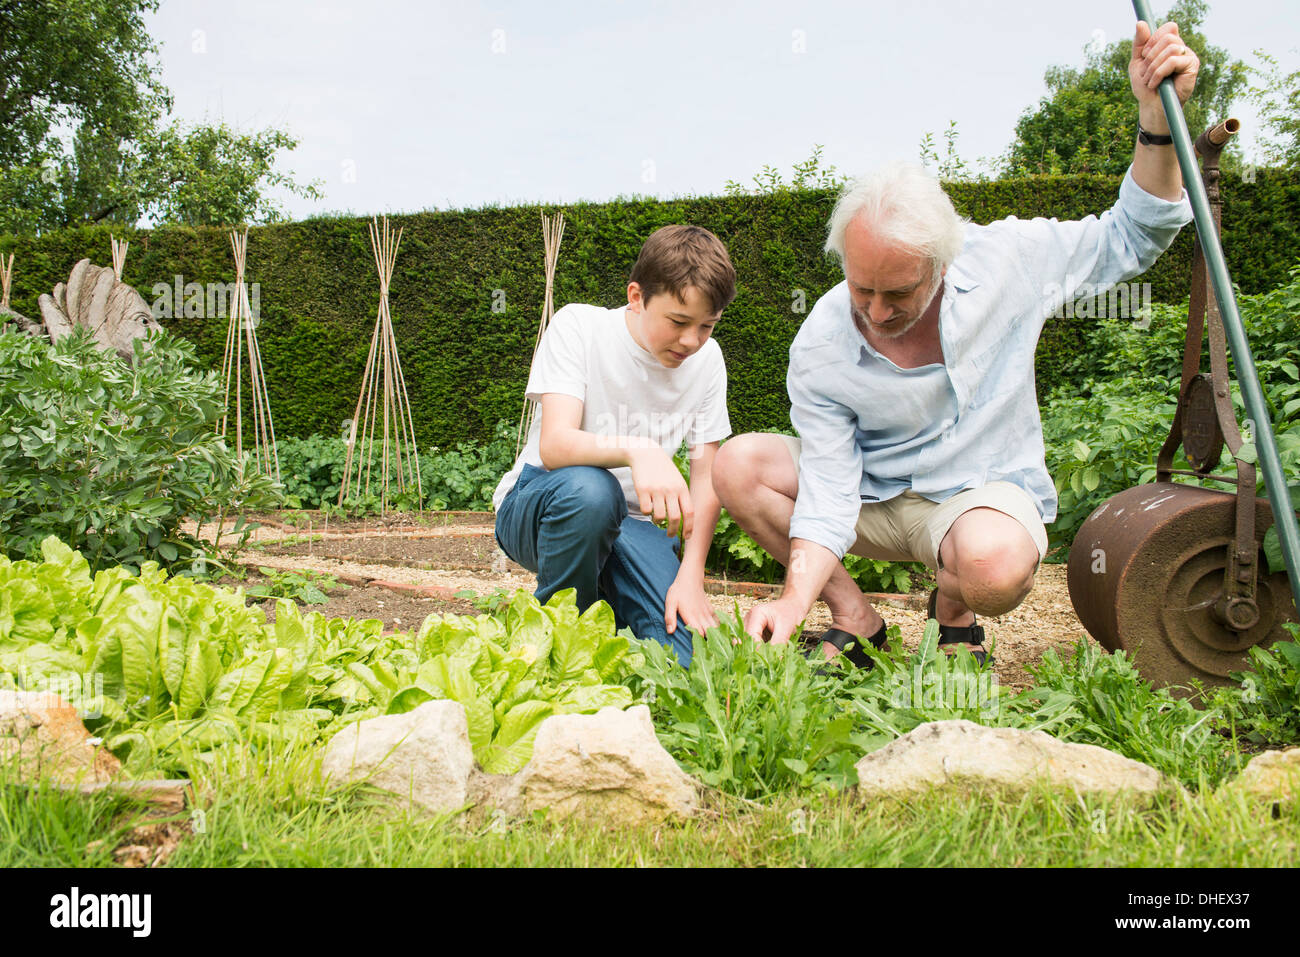 Grandfather and grandson gardening - Stock Image